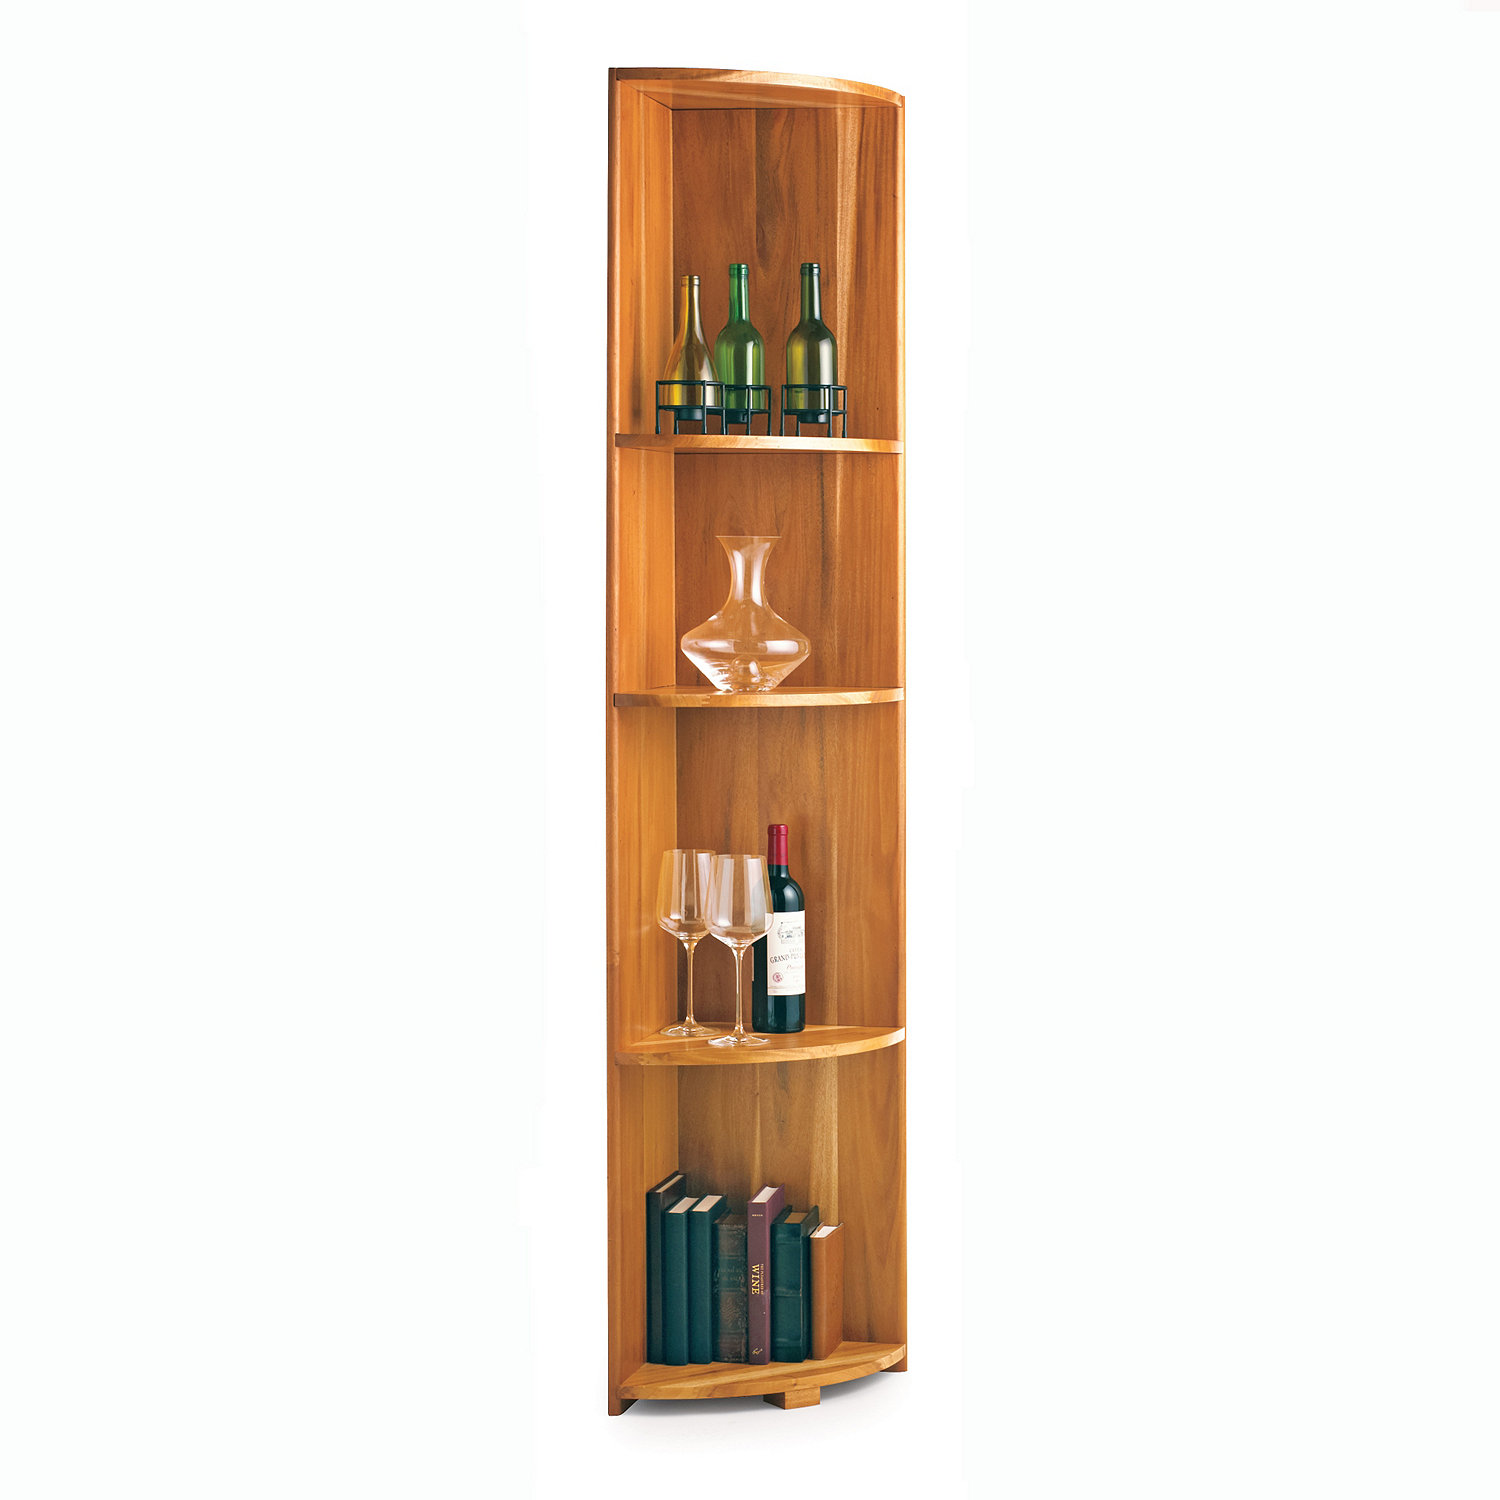 n finity wine rack kit quarter round shelf wine enthusiast rh wineenthusiast com Small Corner Wine Cabinet Corner Wine Bar Cabinet